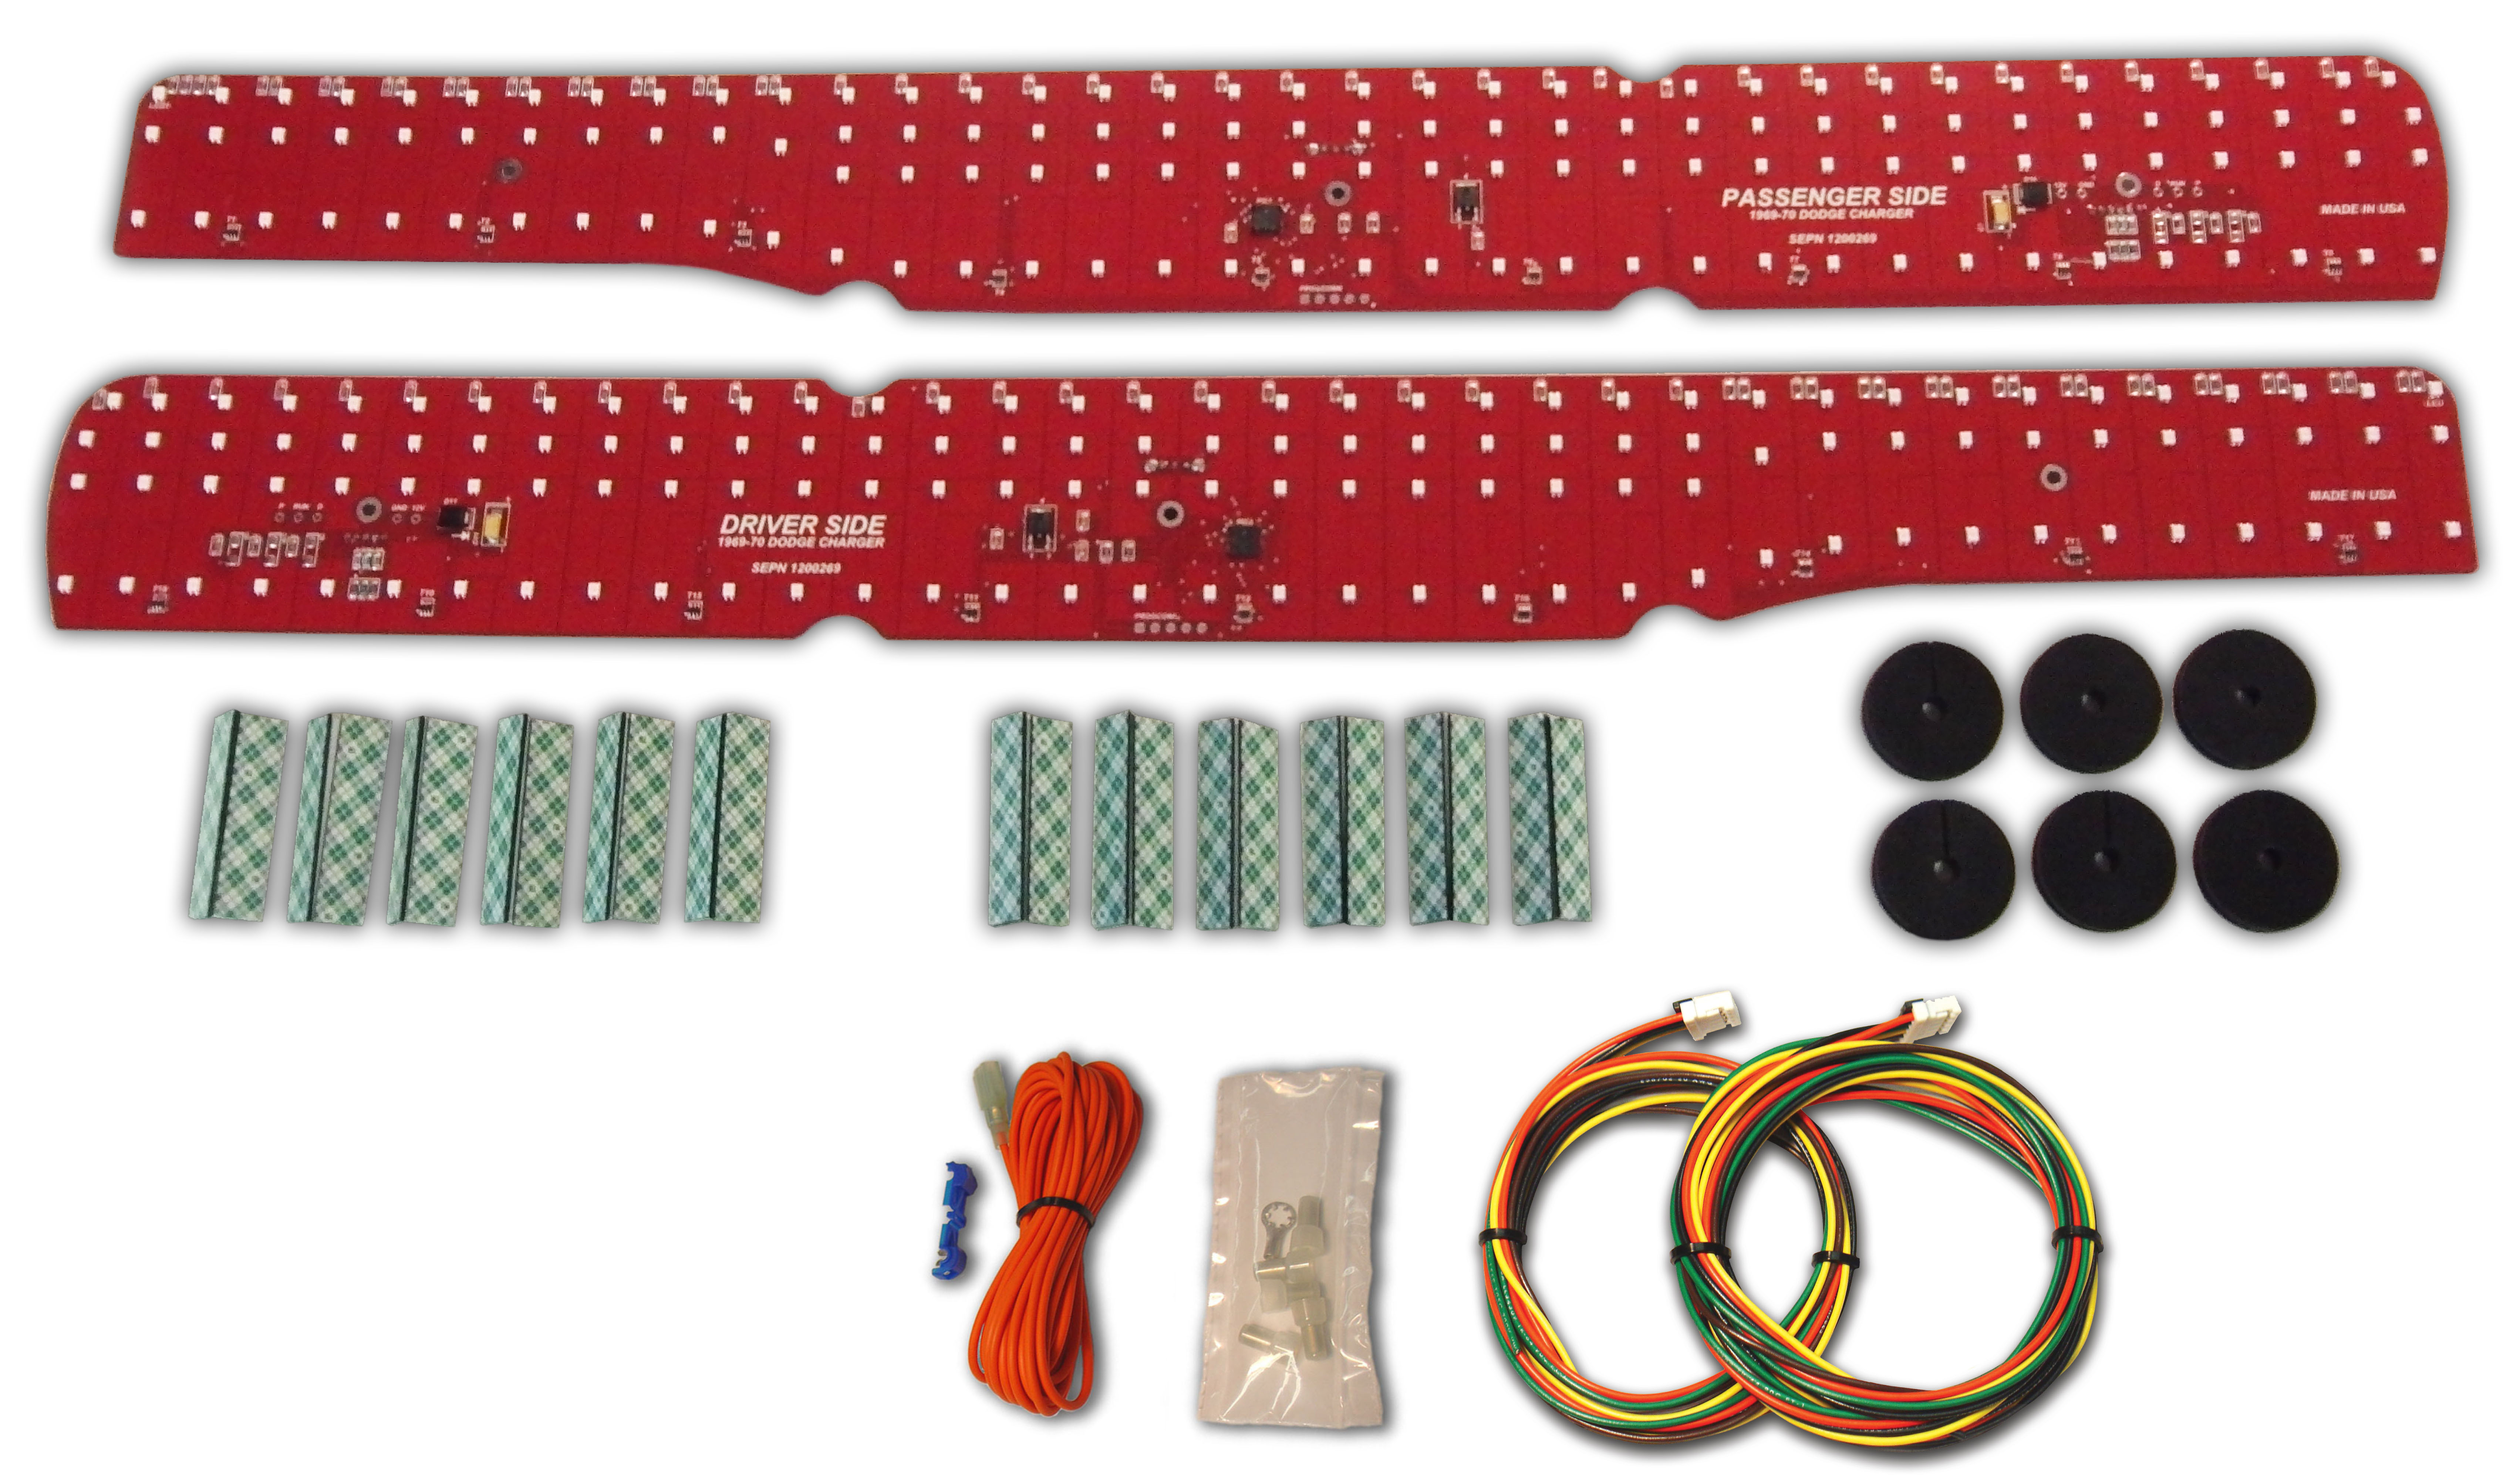 1969 1970 Dodge Charger Led Tail Light Panels Digi Tails 1974 Challenger Wiring Harness